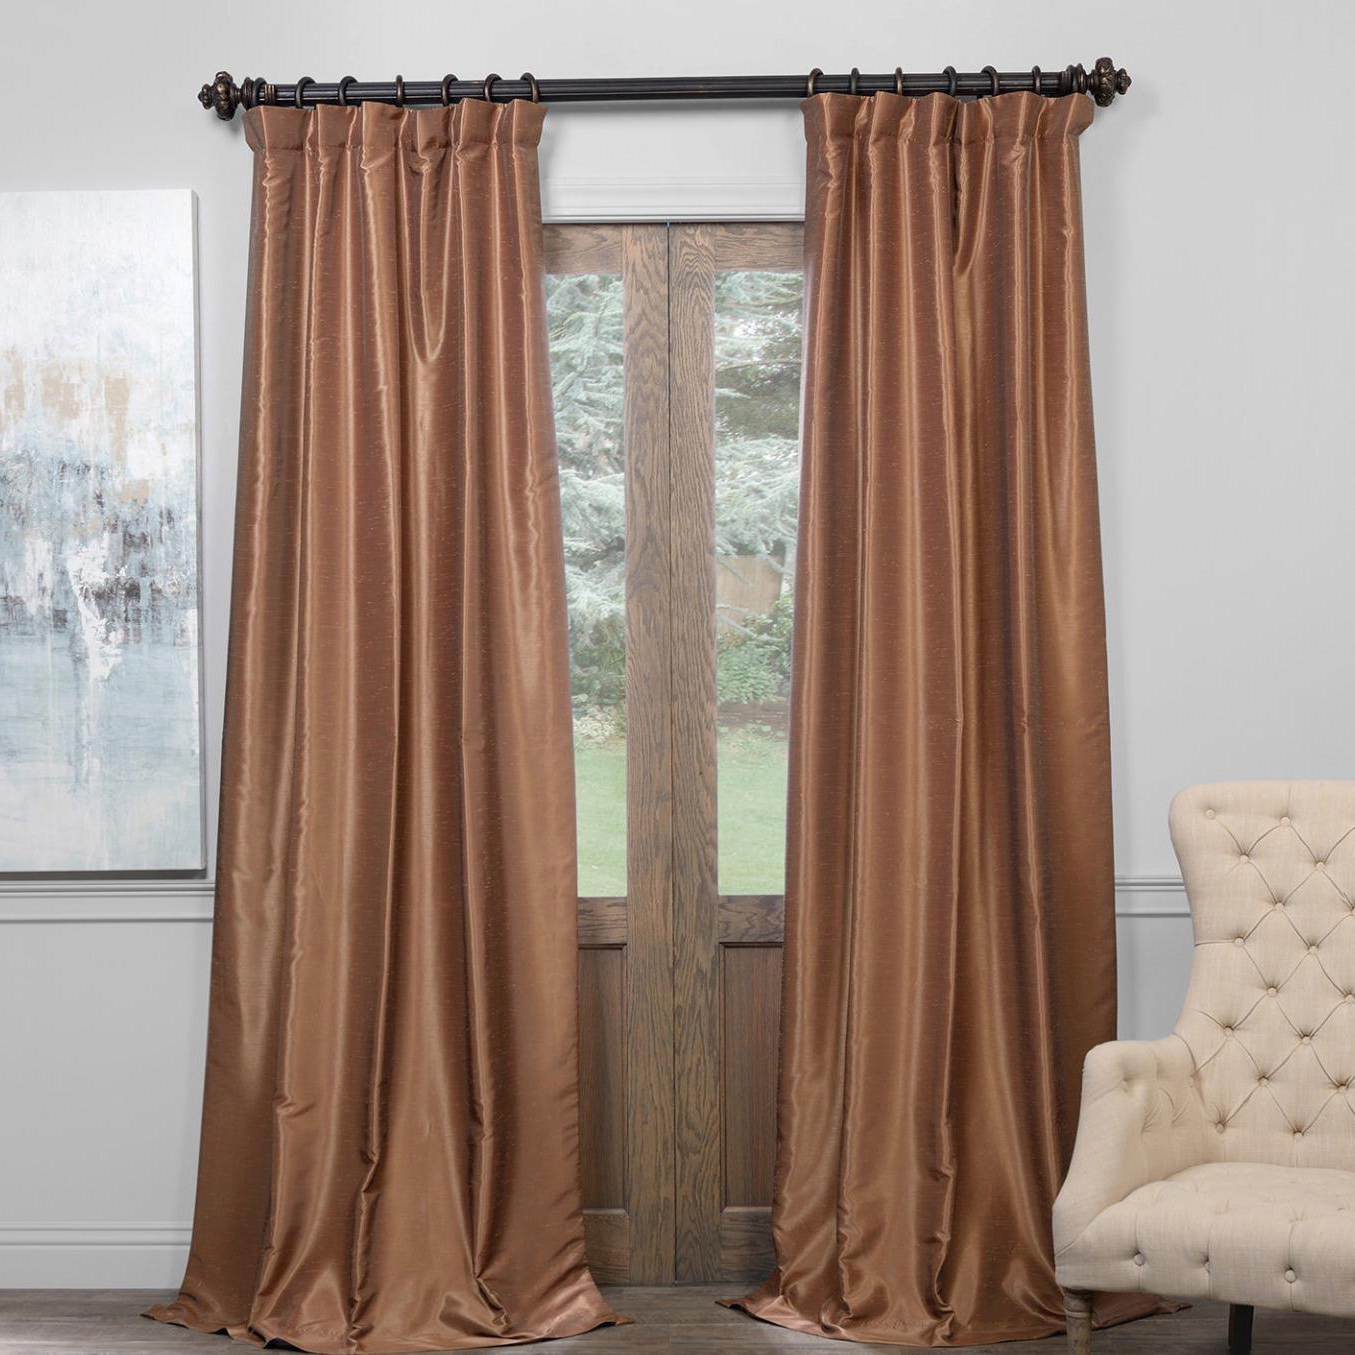 Exclusive Fabrics True Blackout Vintage Textured Faux Dupioni Silk Curtain Panel Pertaining To Most Popular True Blackout Vintage Textured Faux Silk Curtain Panels (View 3 of 20)